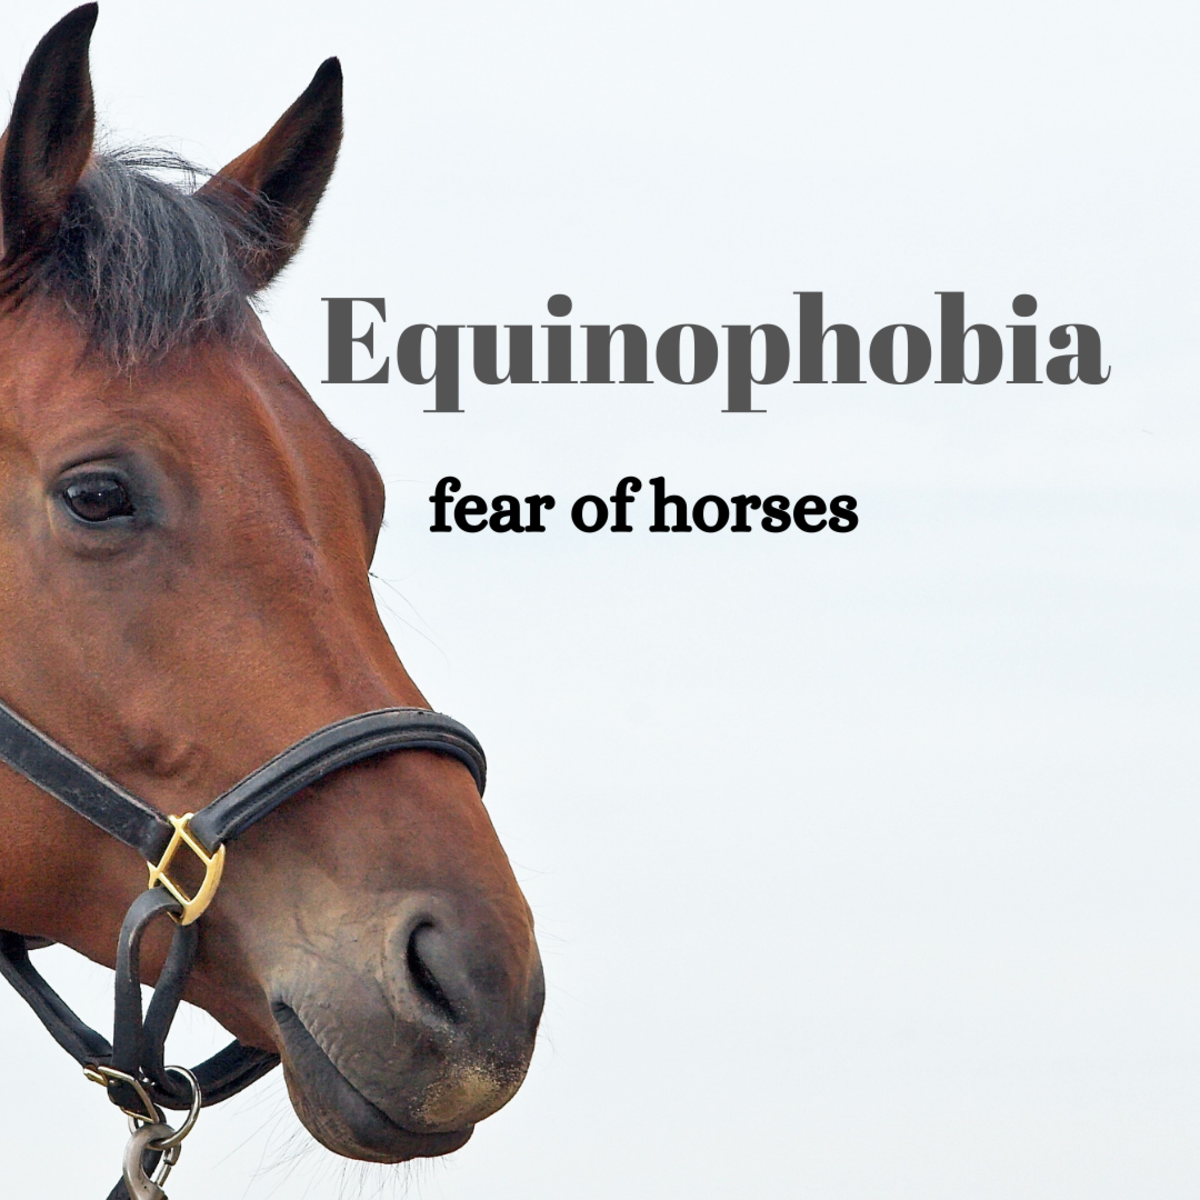 Equinophobia, a fear of horses